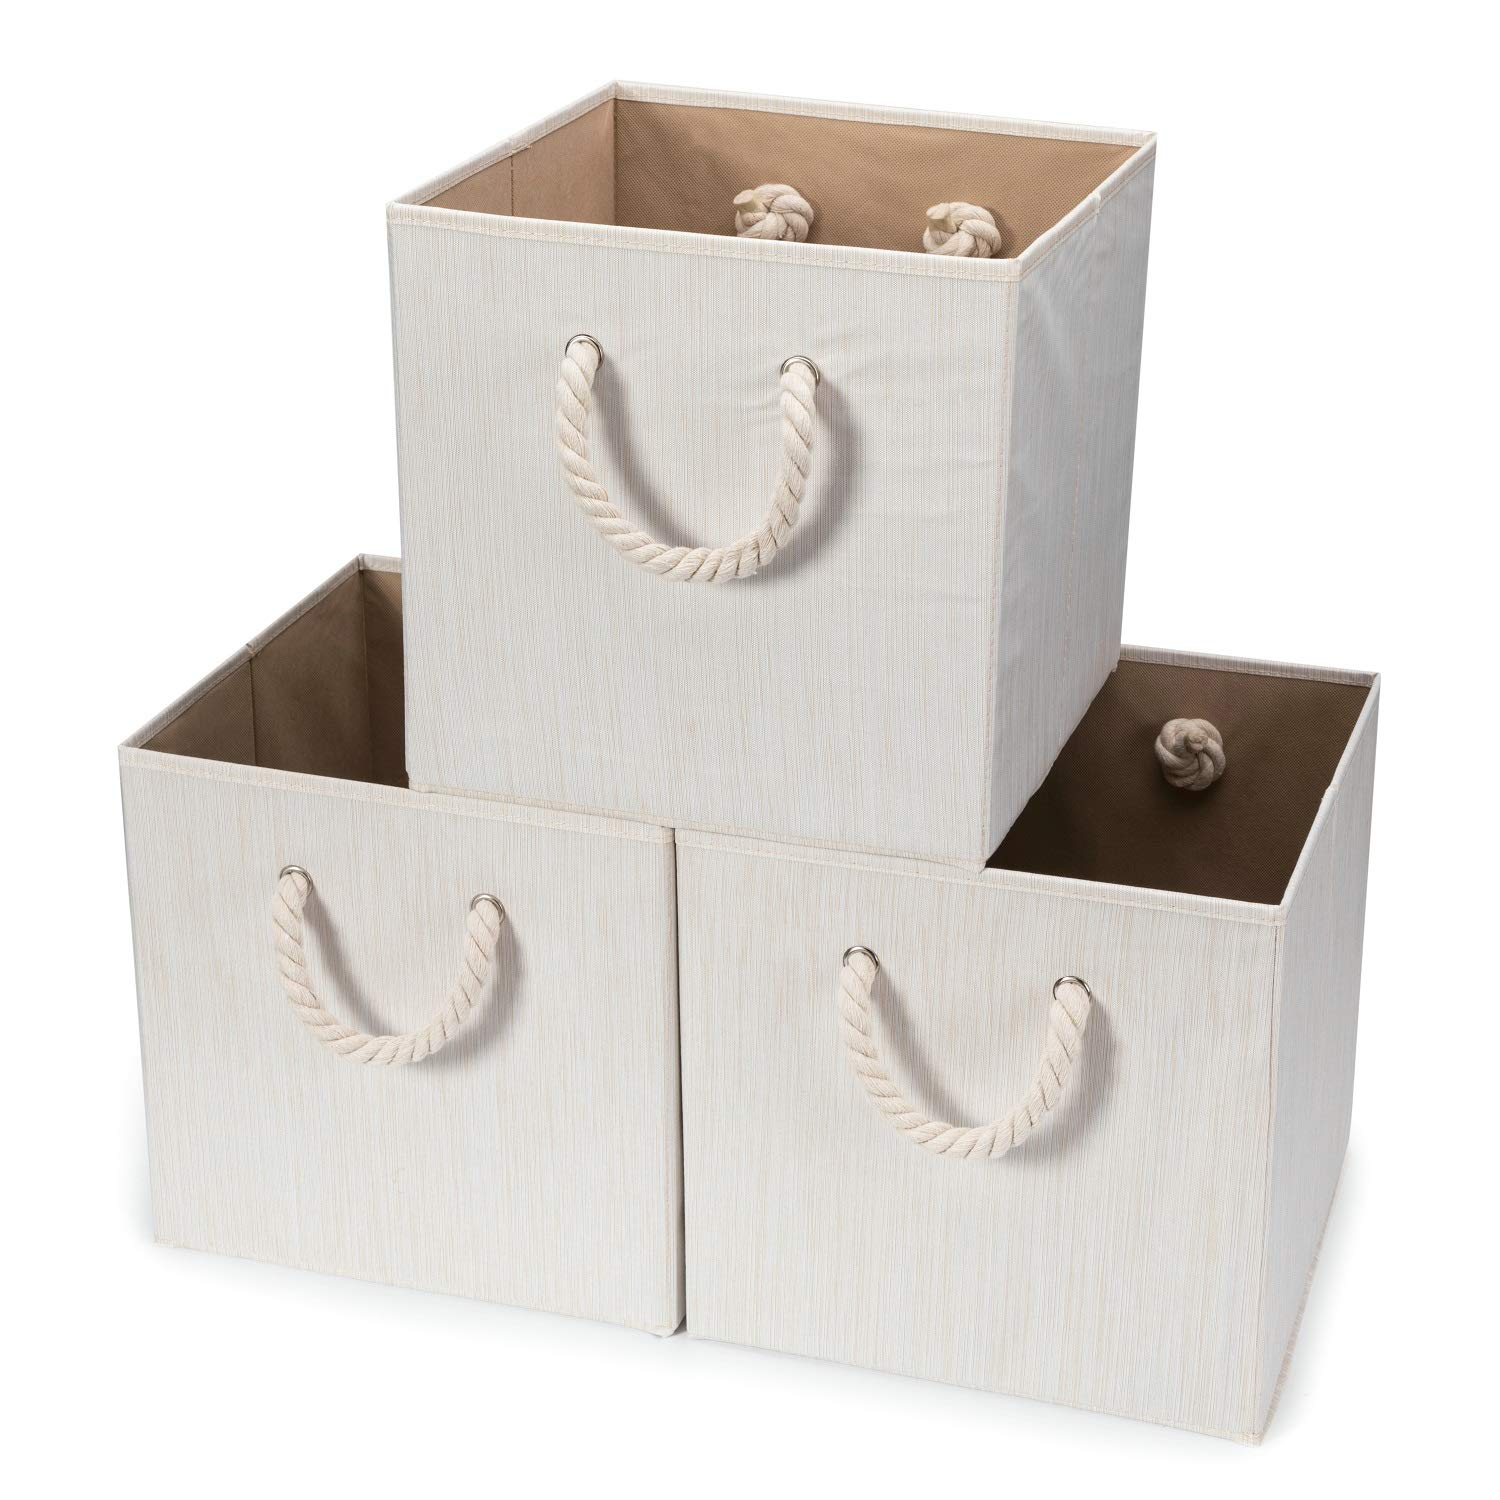 Hadioo 3 Pack Foldable Bamboo Fabric Storage Bins for Cube Organizer with Cotton Rope Handles, Collapsible Basket Box Organizer for Shelves and Closet- Beige 13x13x13 inch by Hadioo